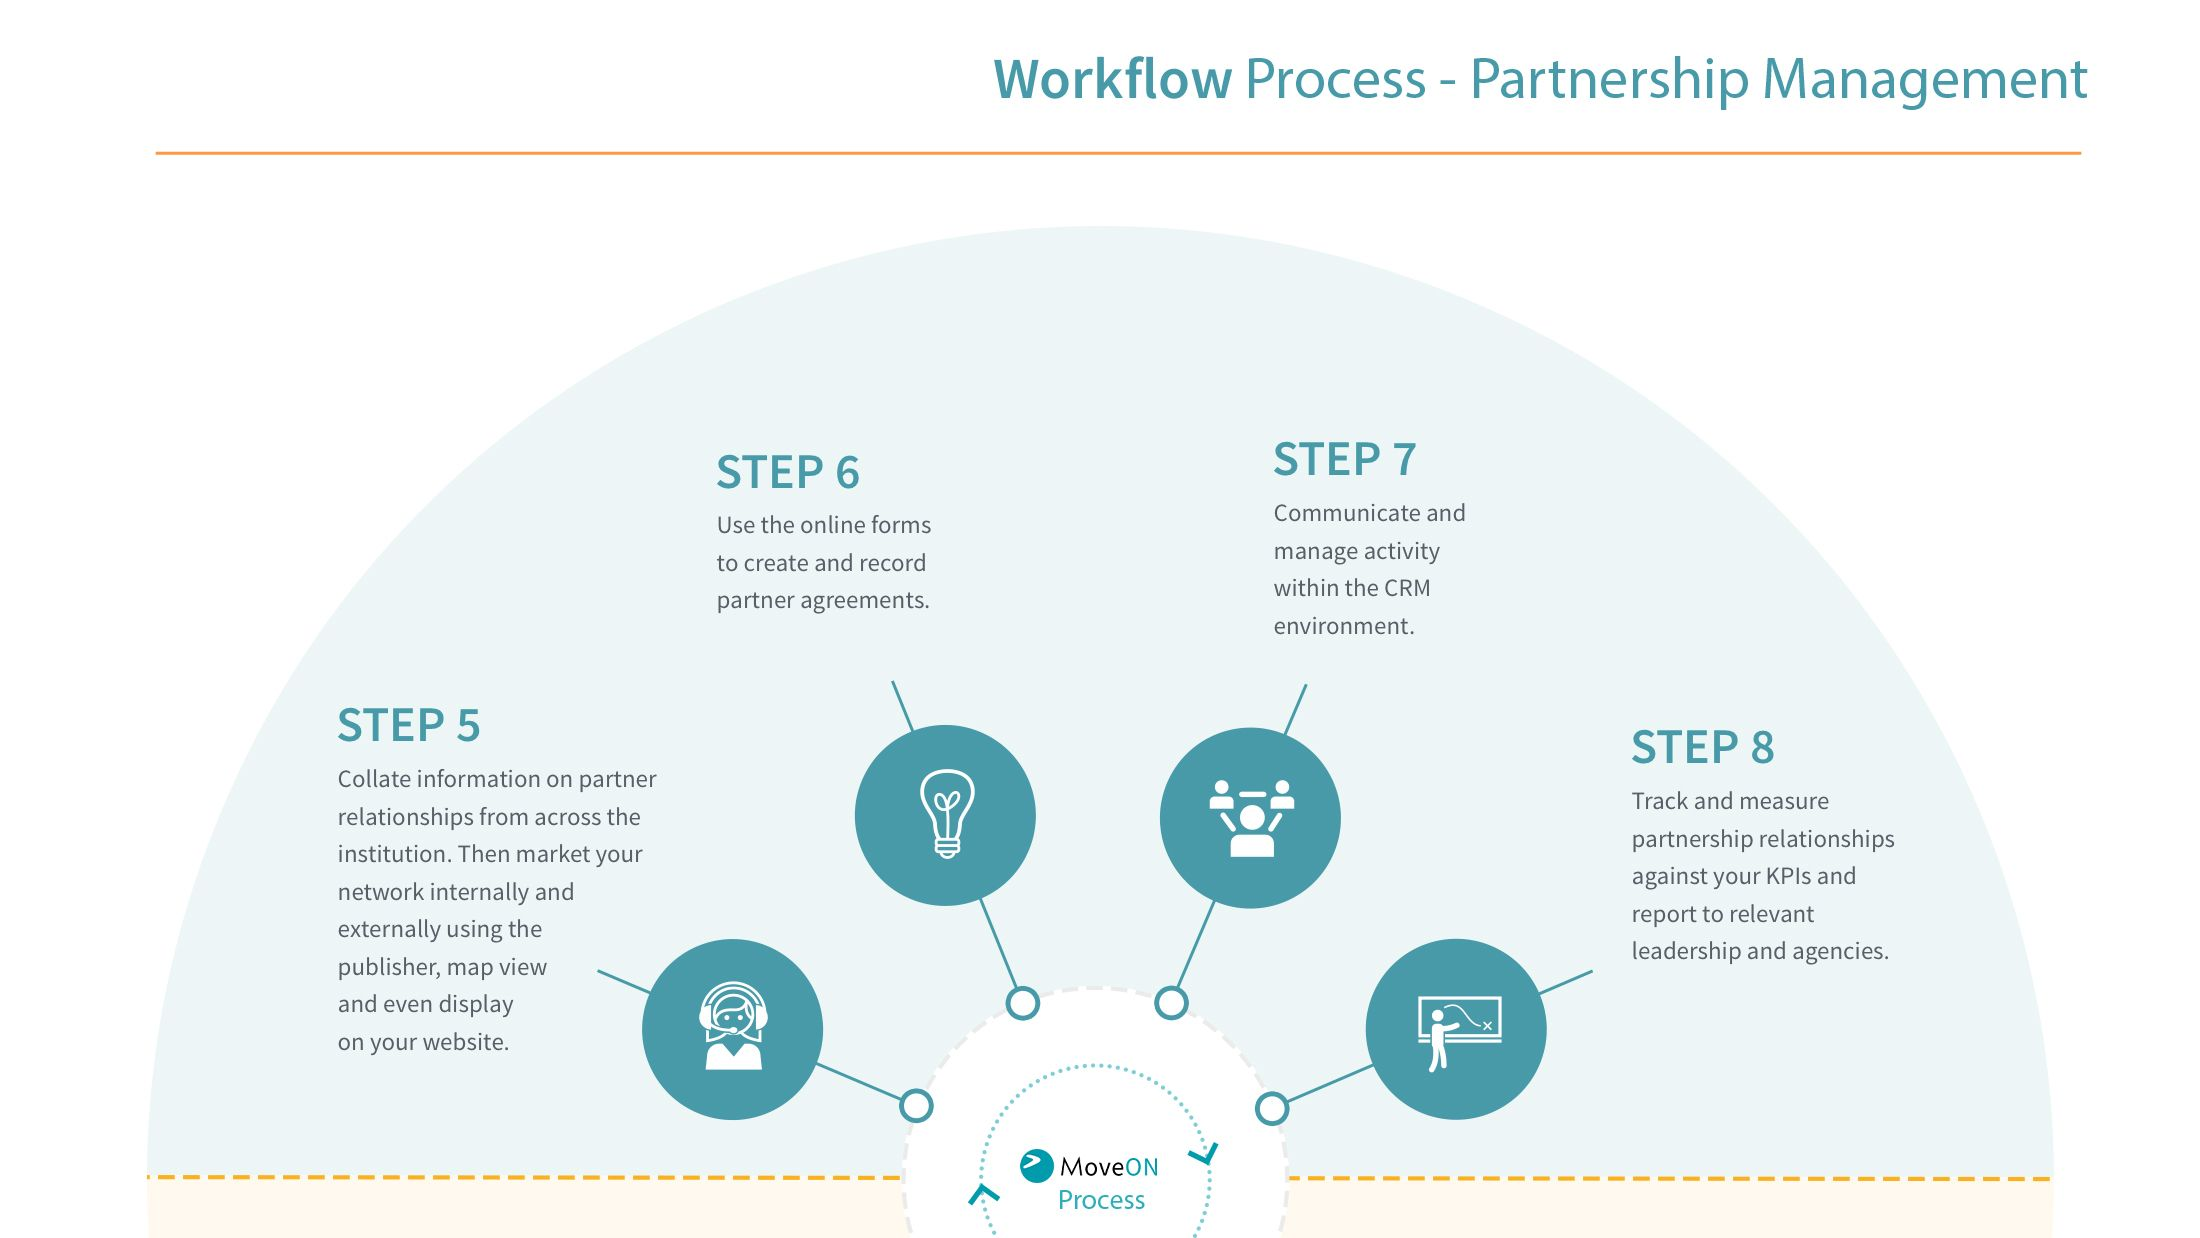 MoveOn-Workflow-Process-SemiCircle2